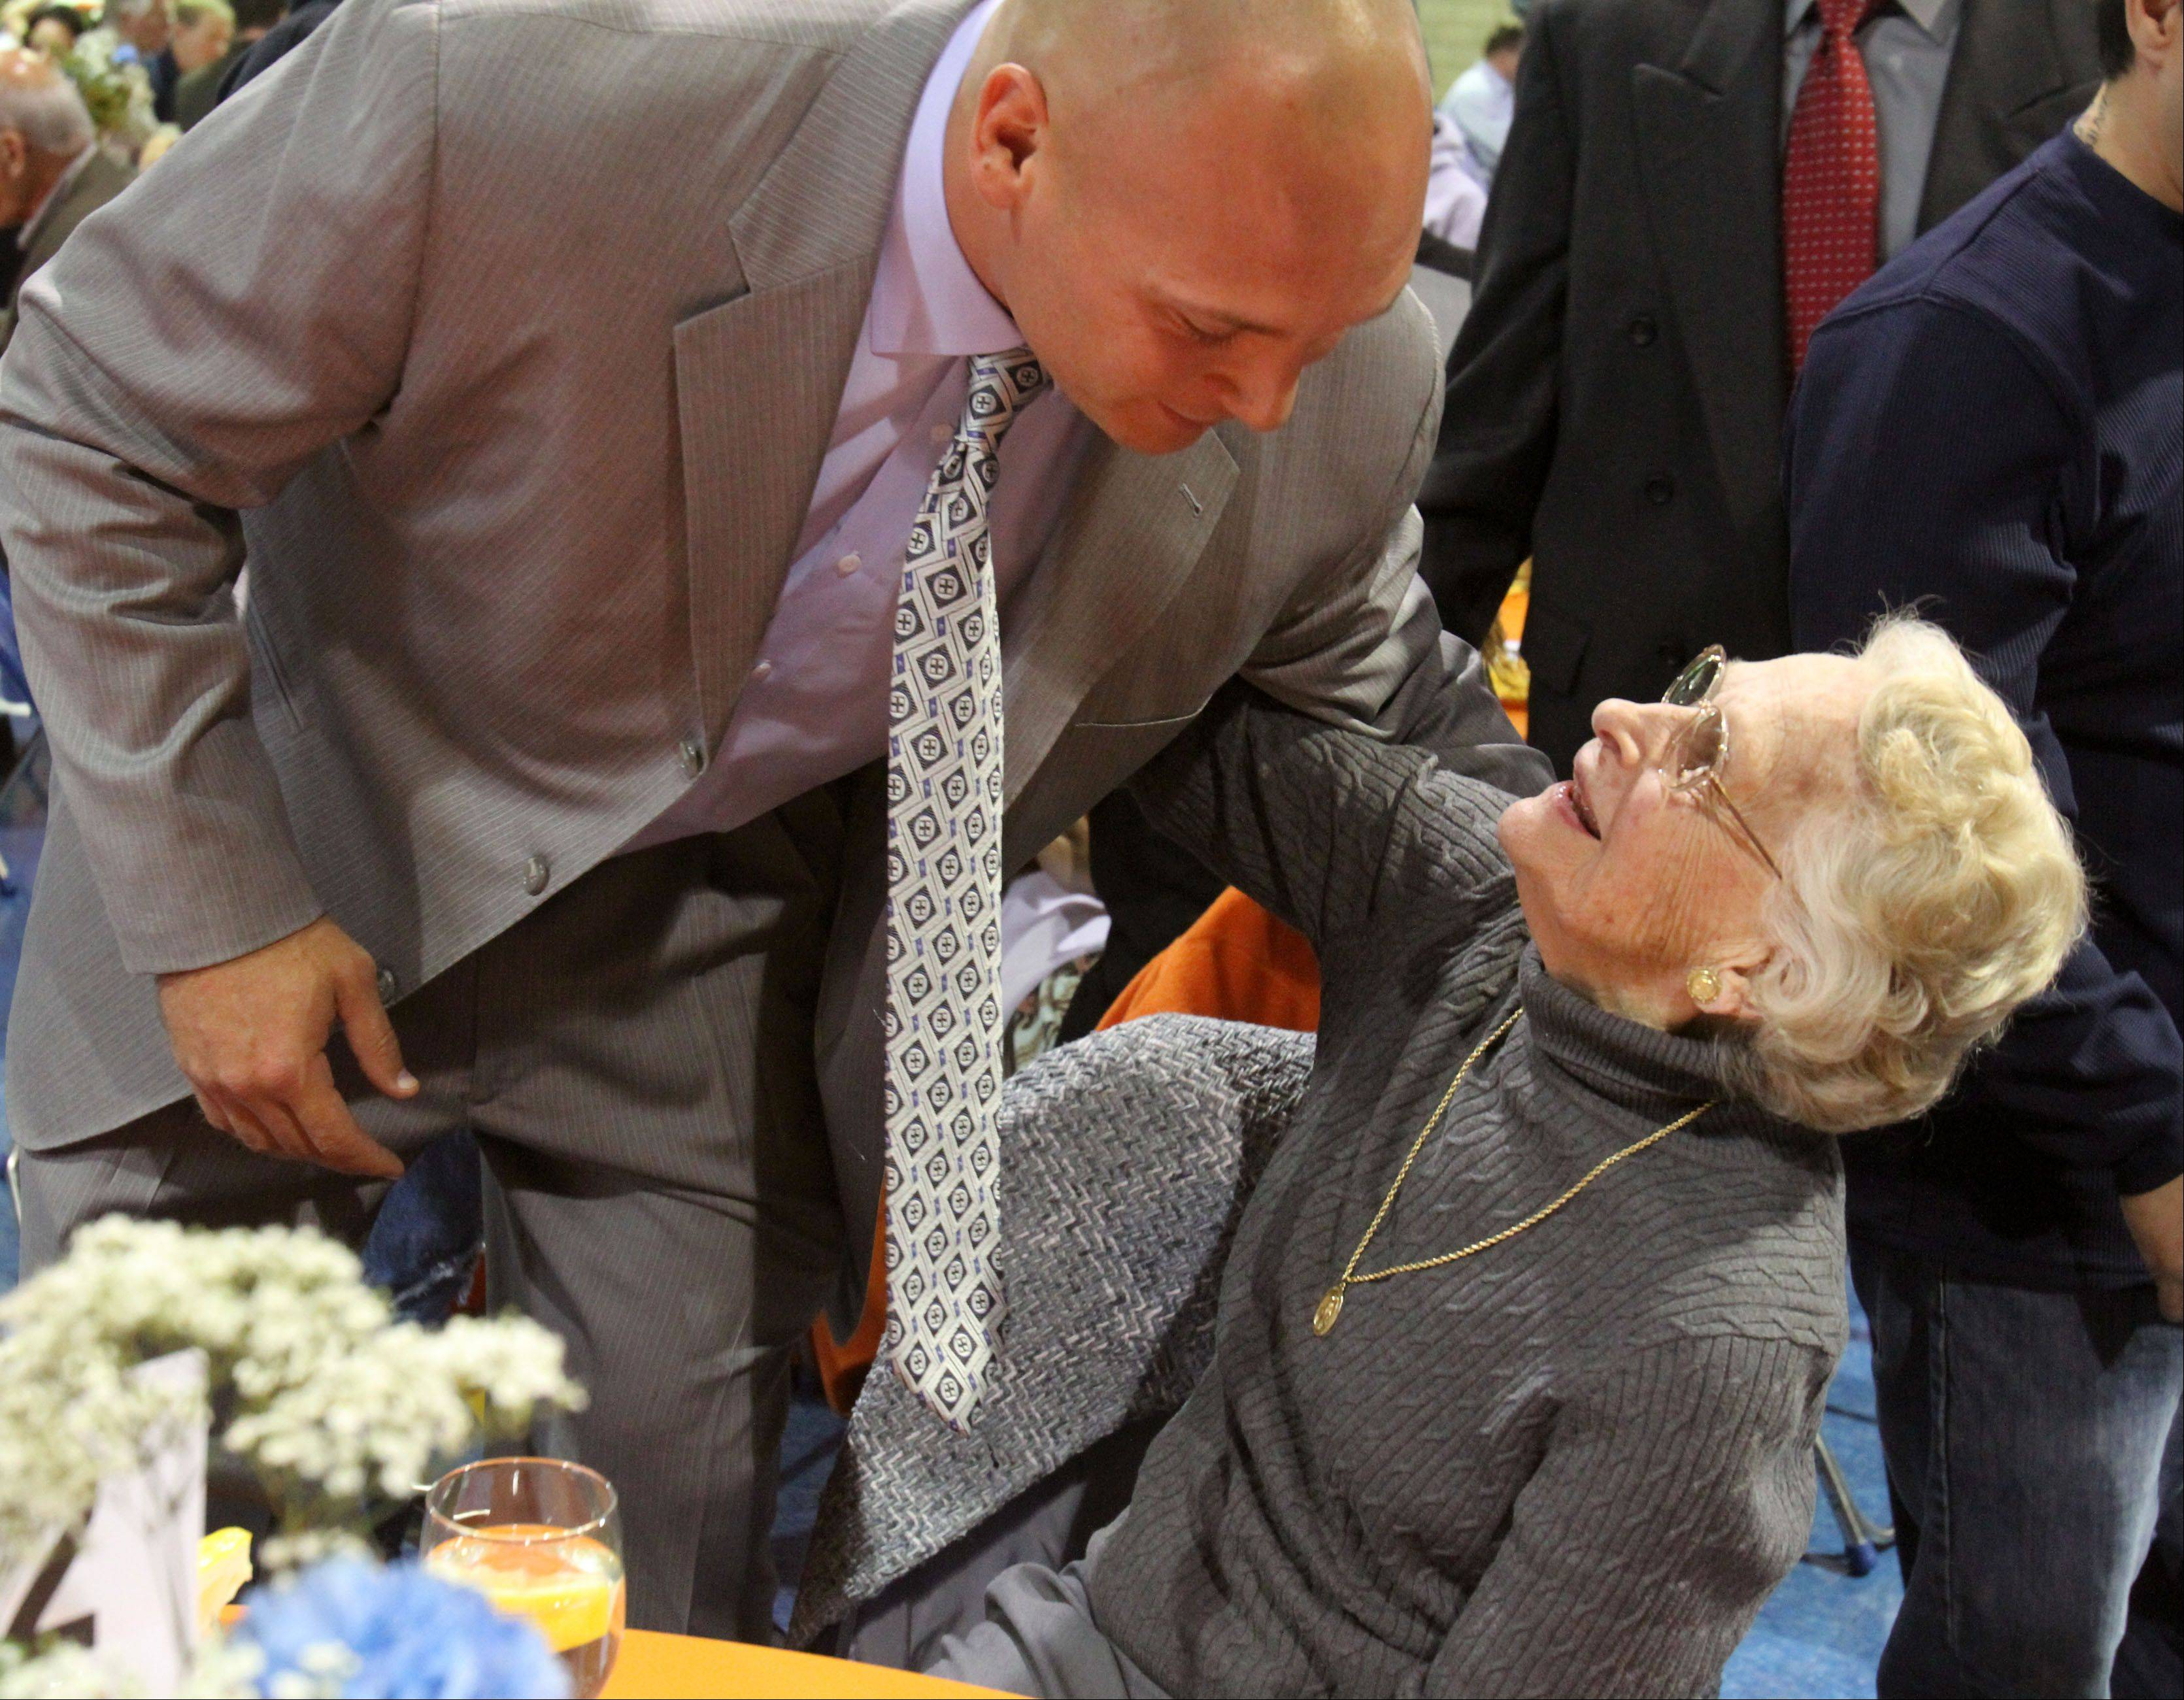 Brian Urlacher gets a hug from Virginia Halas McCaskey, principal owner of the Chicago Bears, as he goes up to get his award.